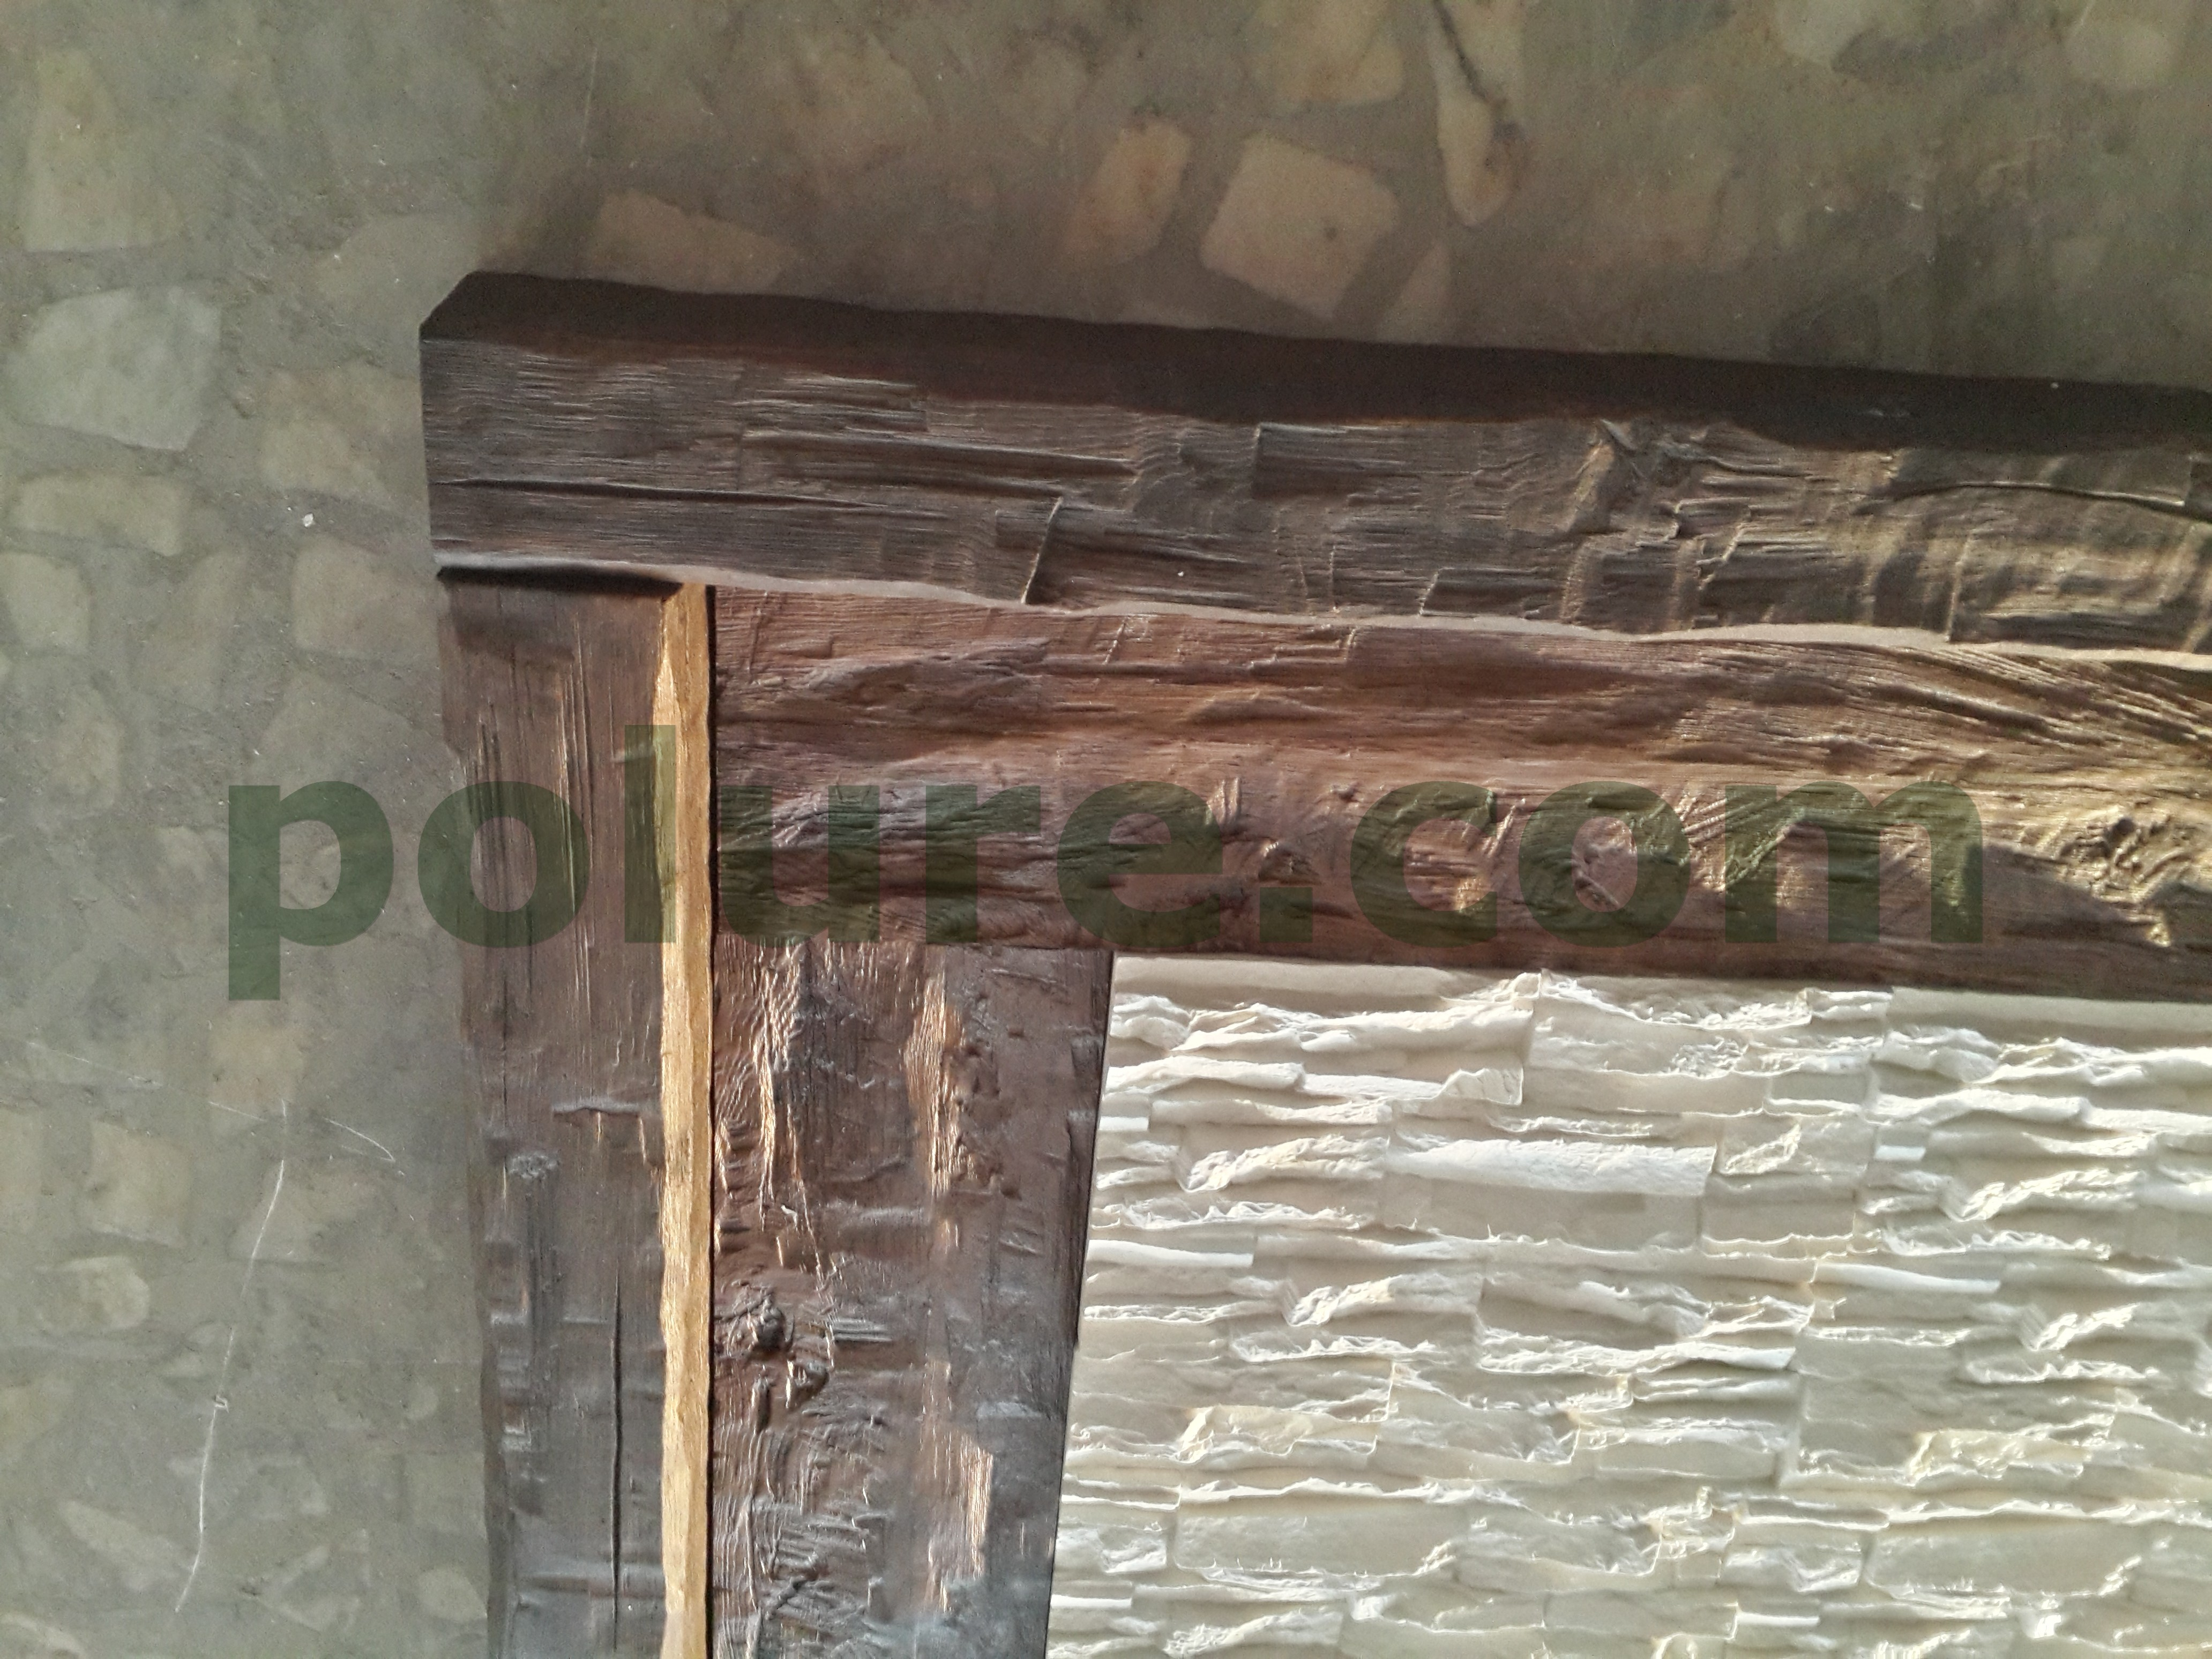 p-660-decorative-polyurethane-stone-look-like-moulding-panel-for-garden-wall-coted-rock-imitation-pu-for-interior-exterior decoration-board-price (1)